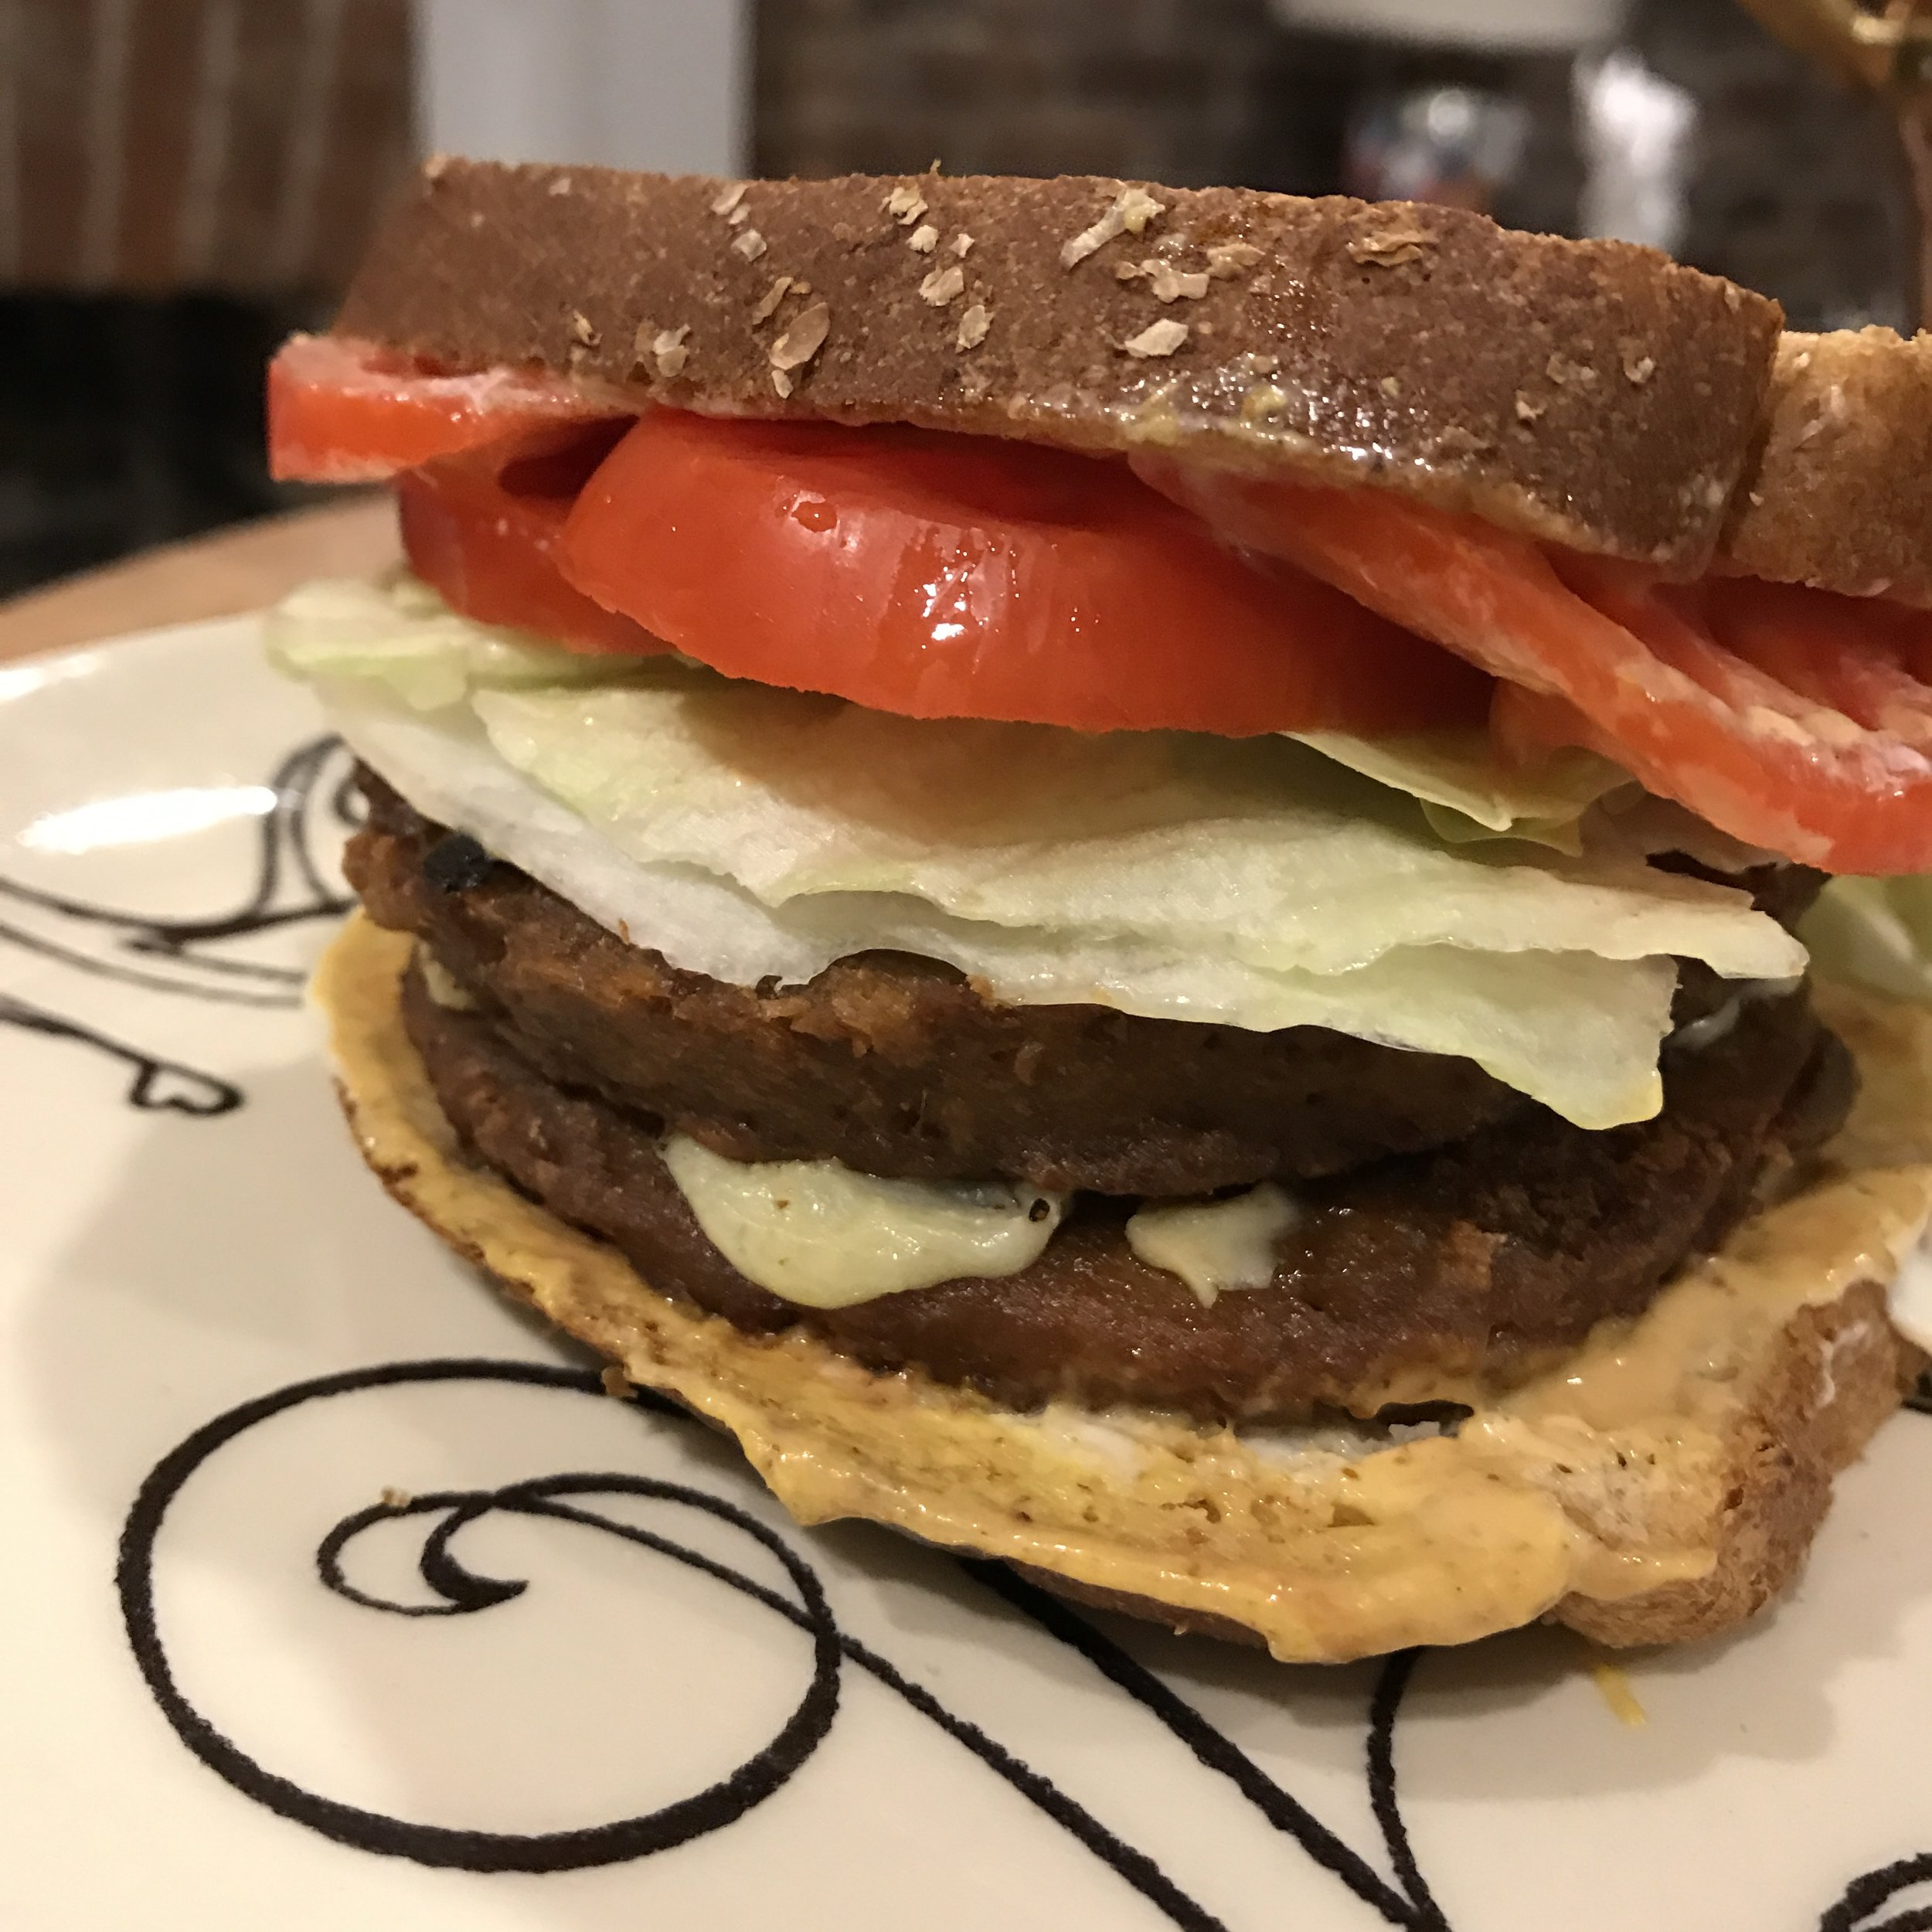 Saturday: a mouthwatering double cheeseburger made with grillers from Morningstar!